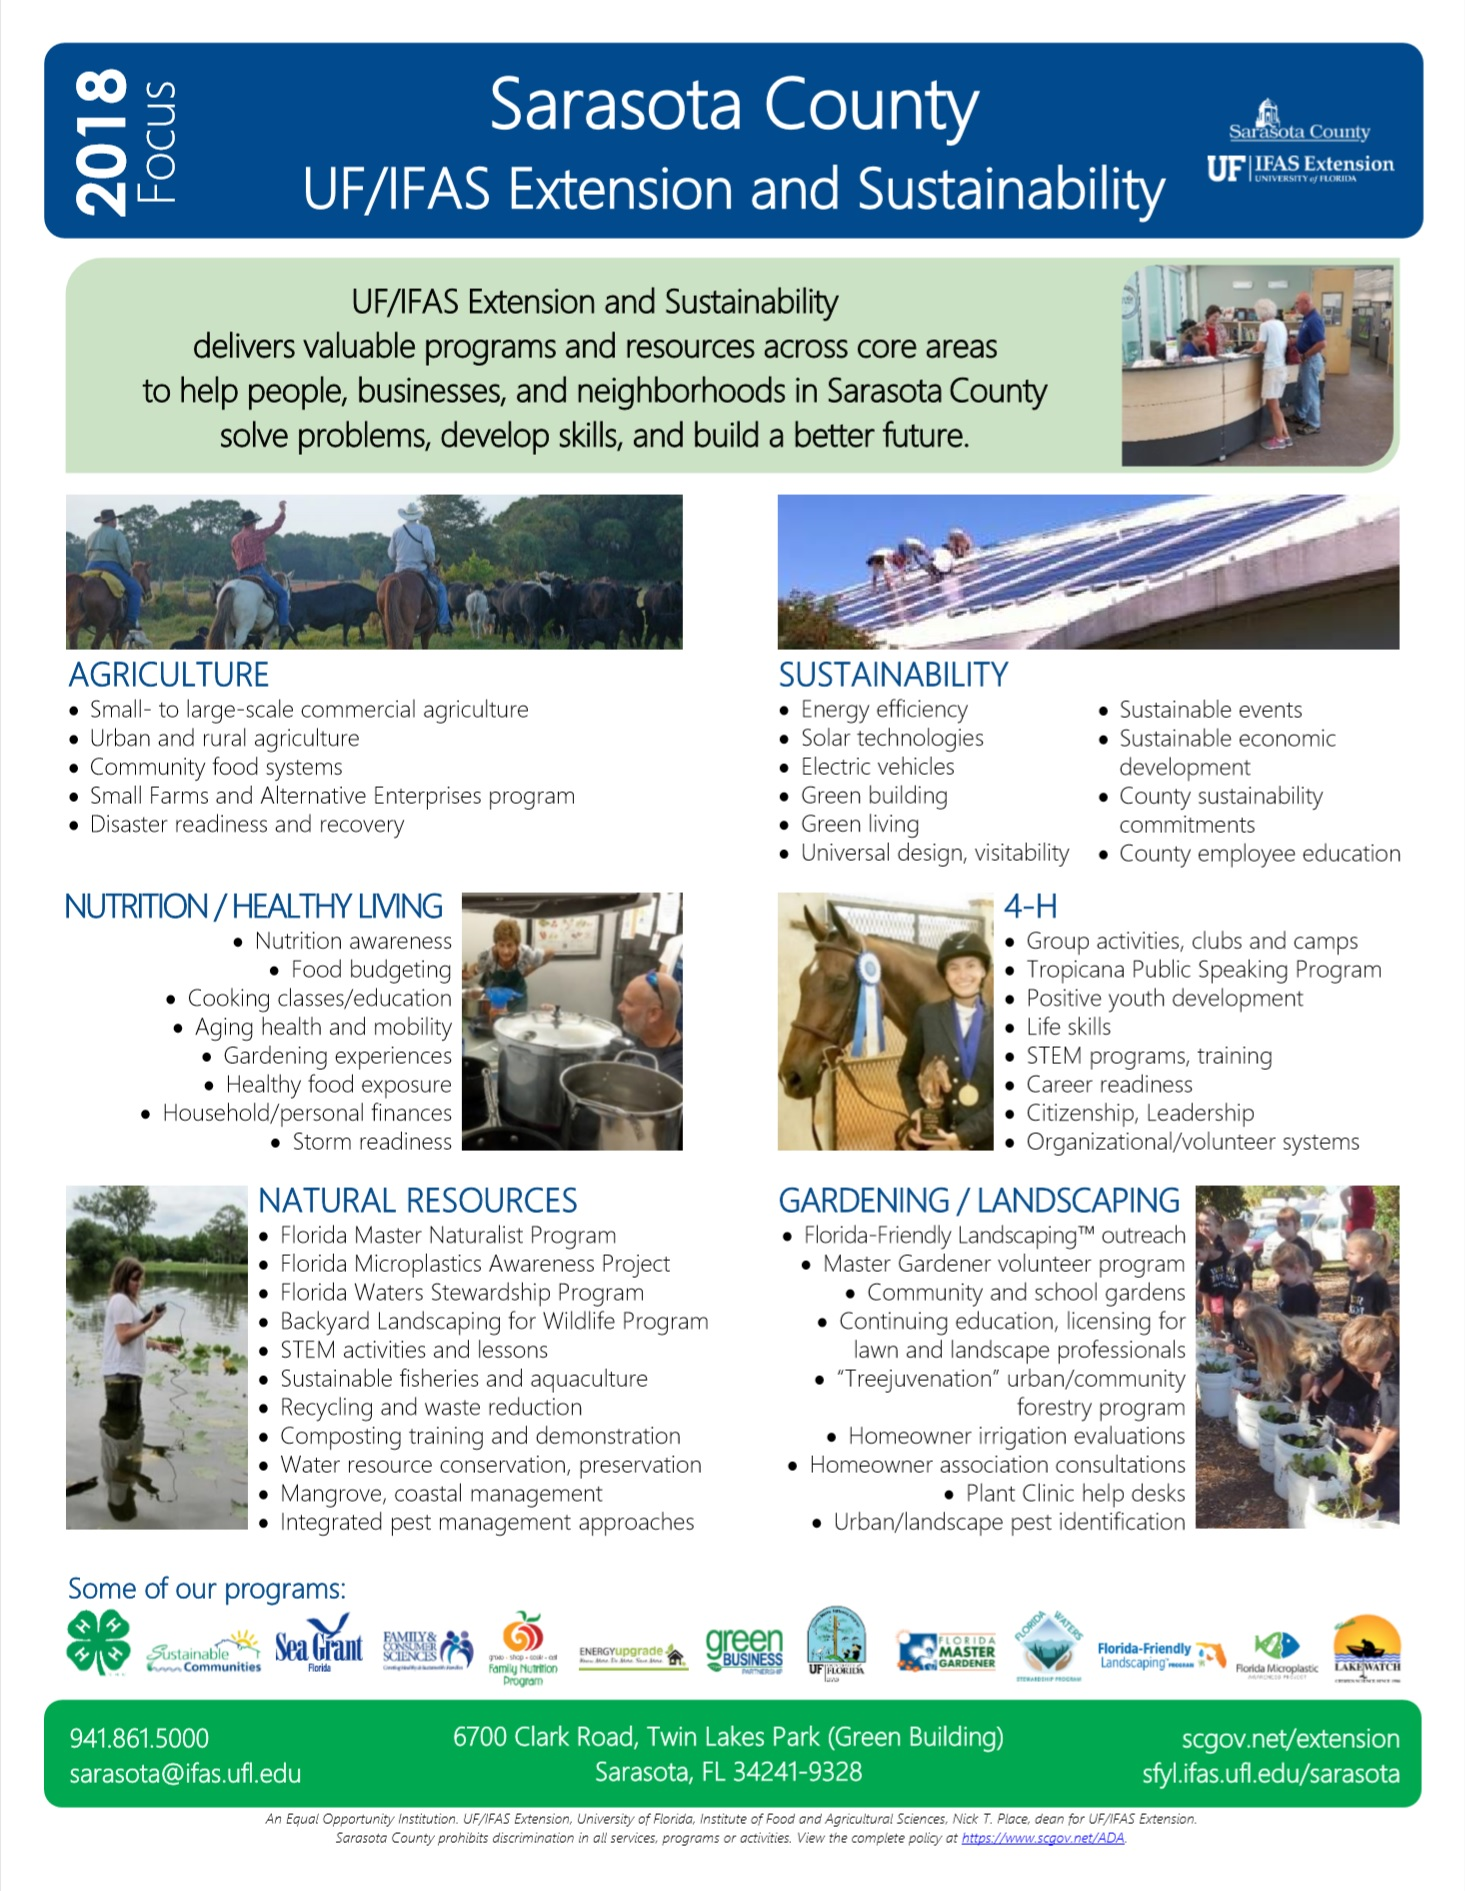 2018 Extension and Sustainability fact sheet